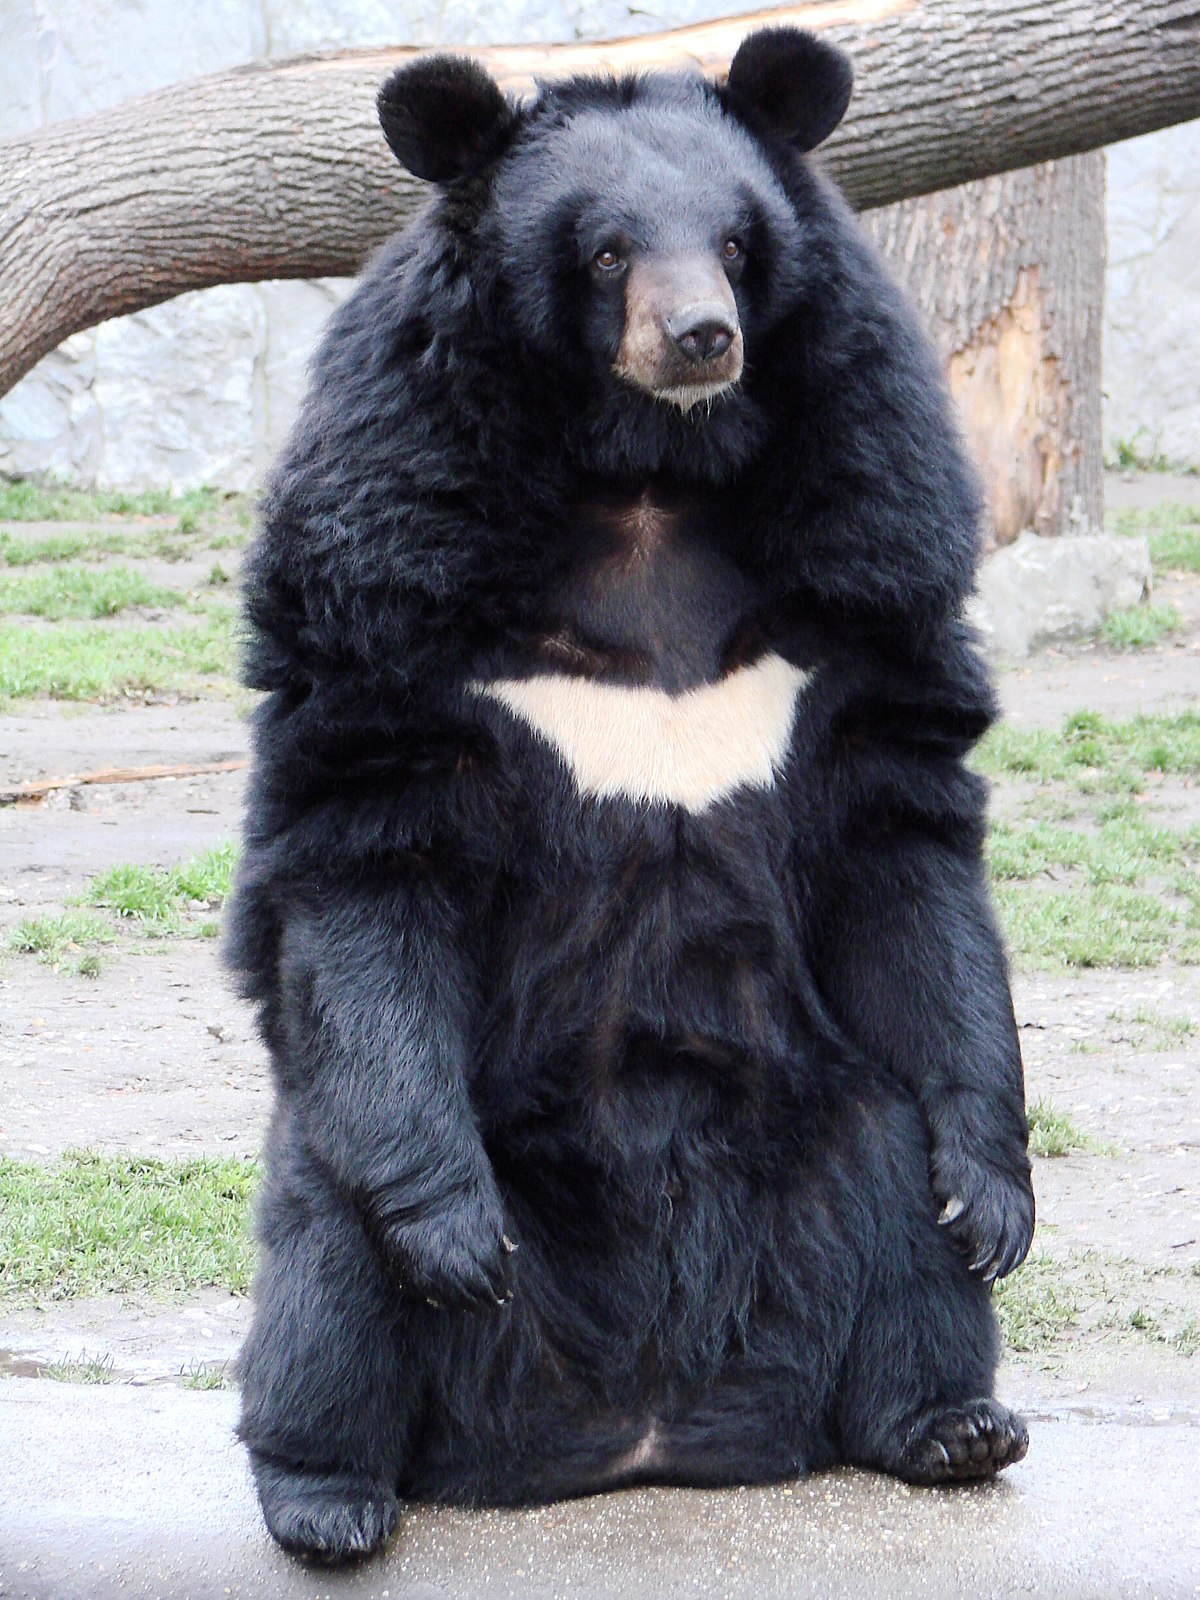 Asian black bear - Wikipedia